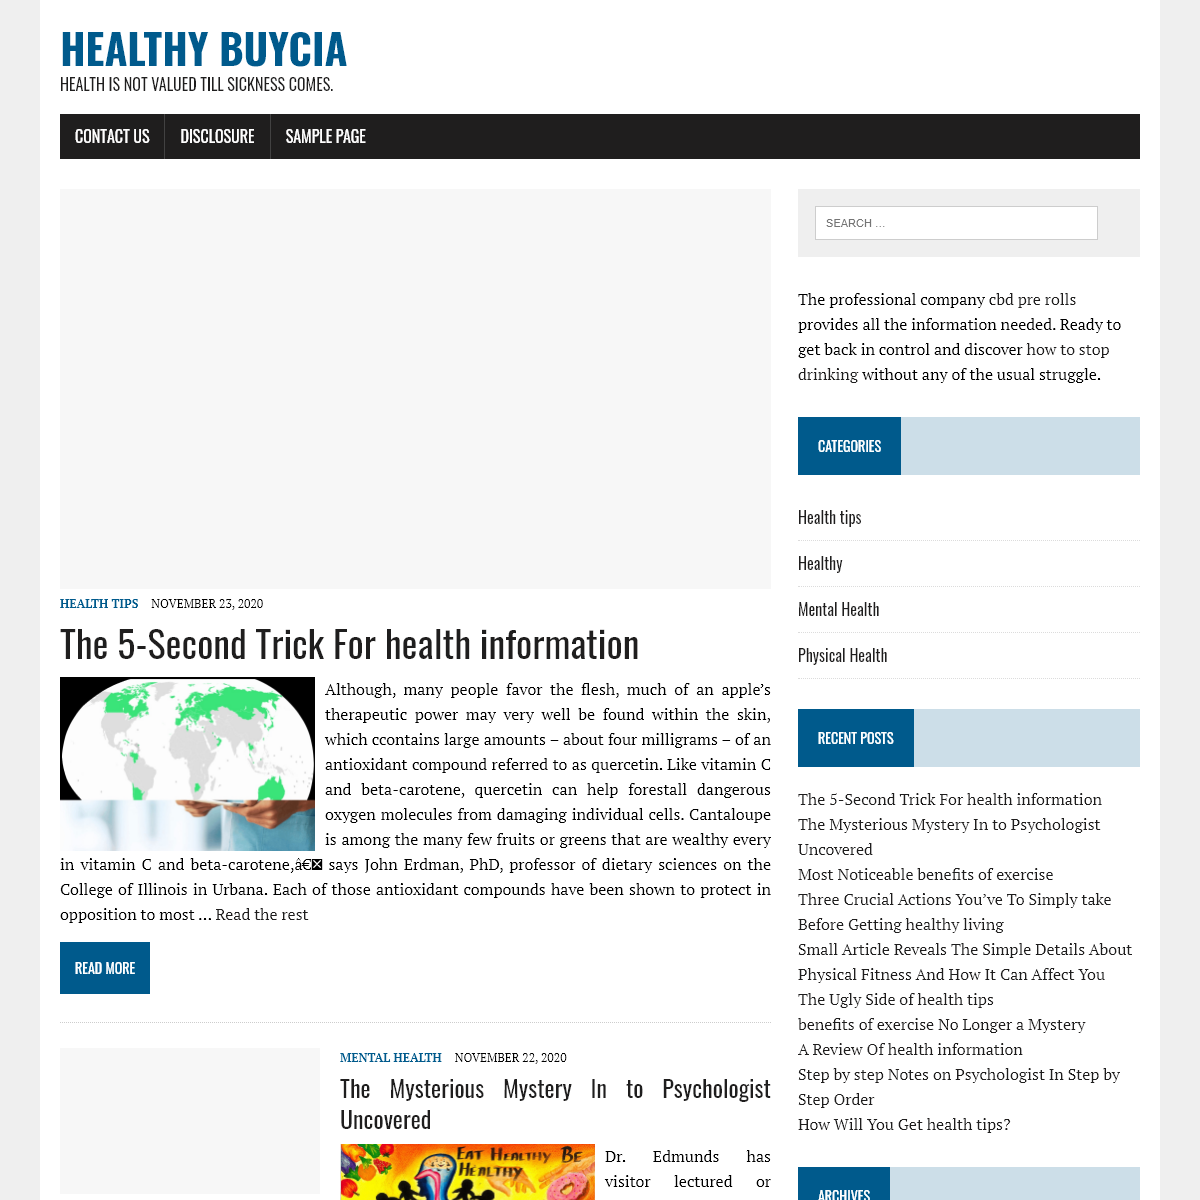 Healthy Buycia – Health is not valued till sickness comes.